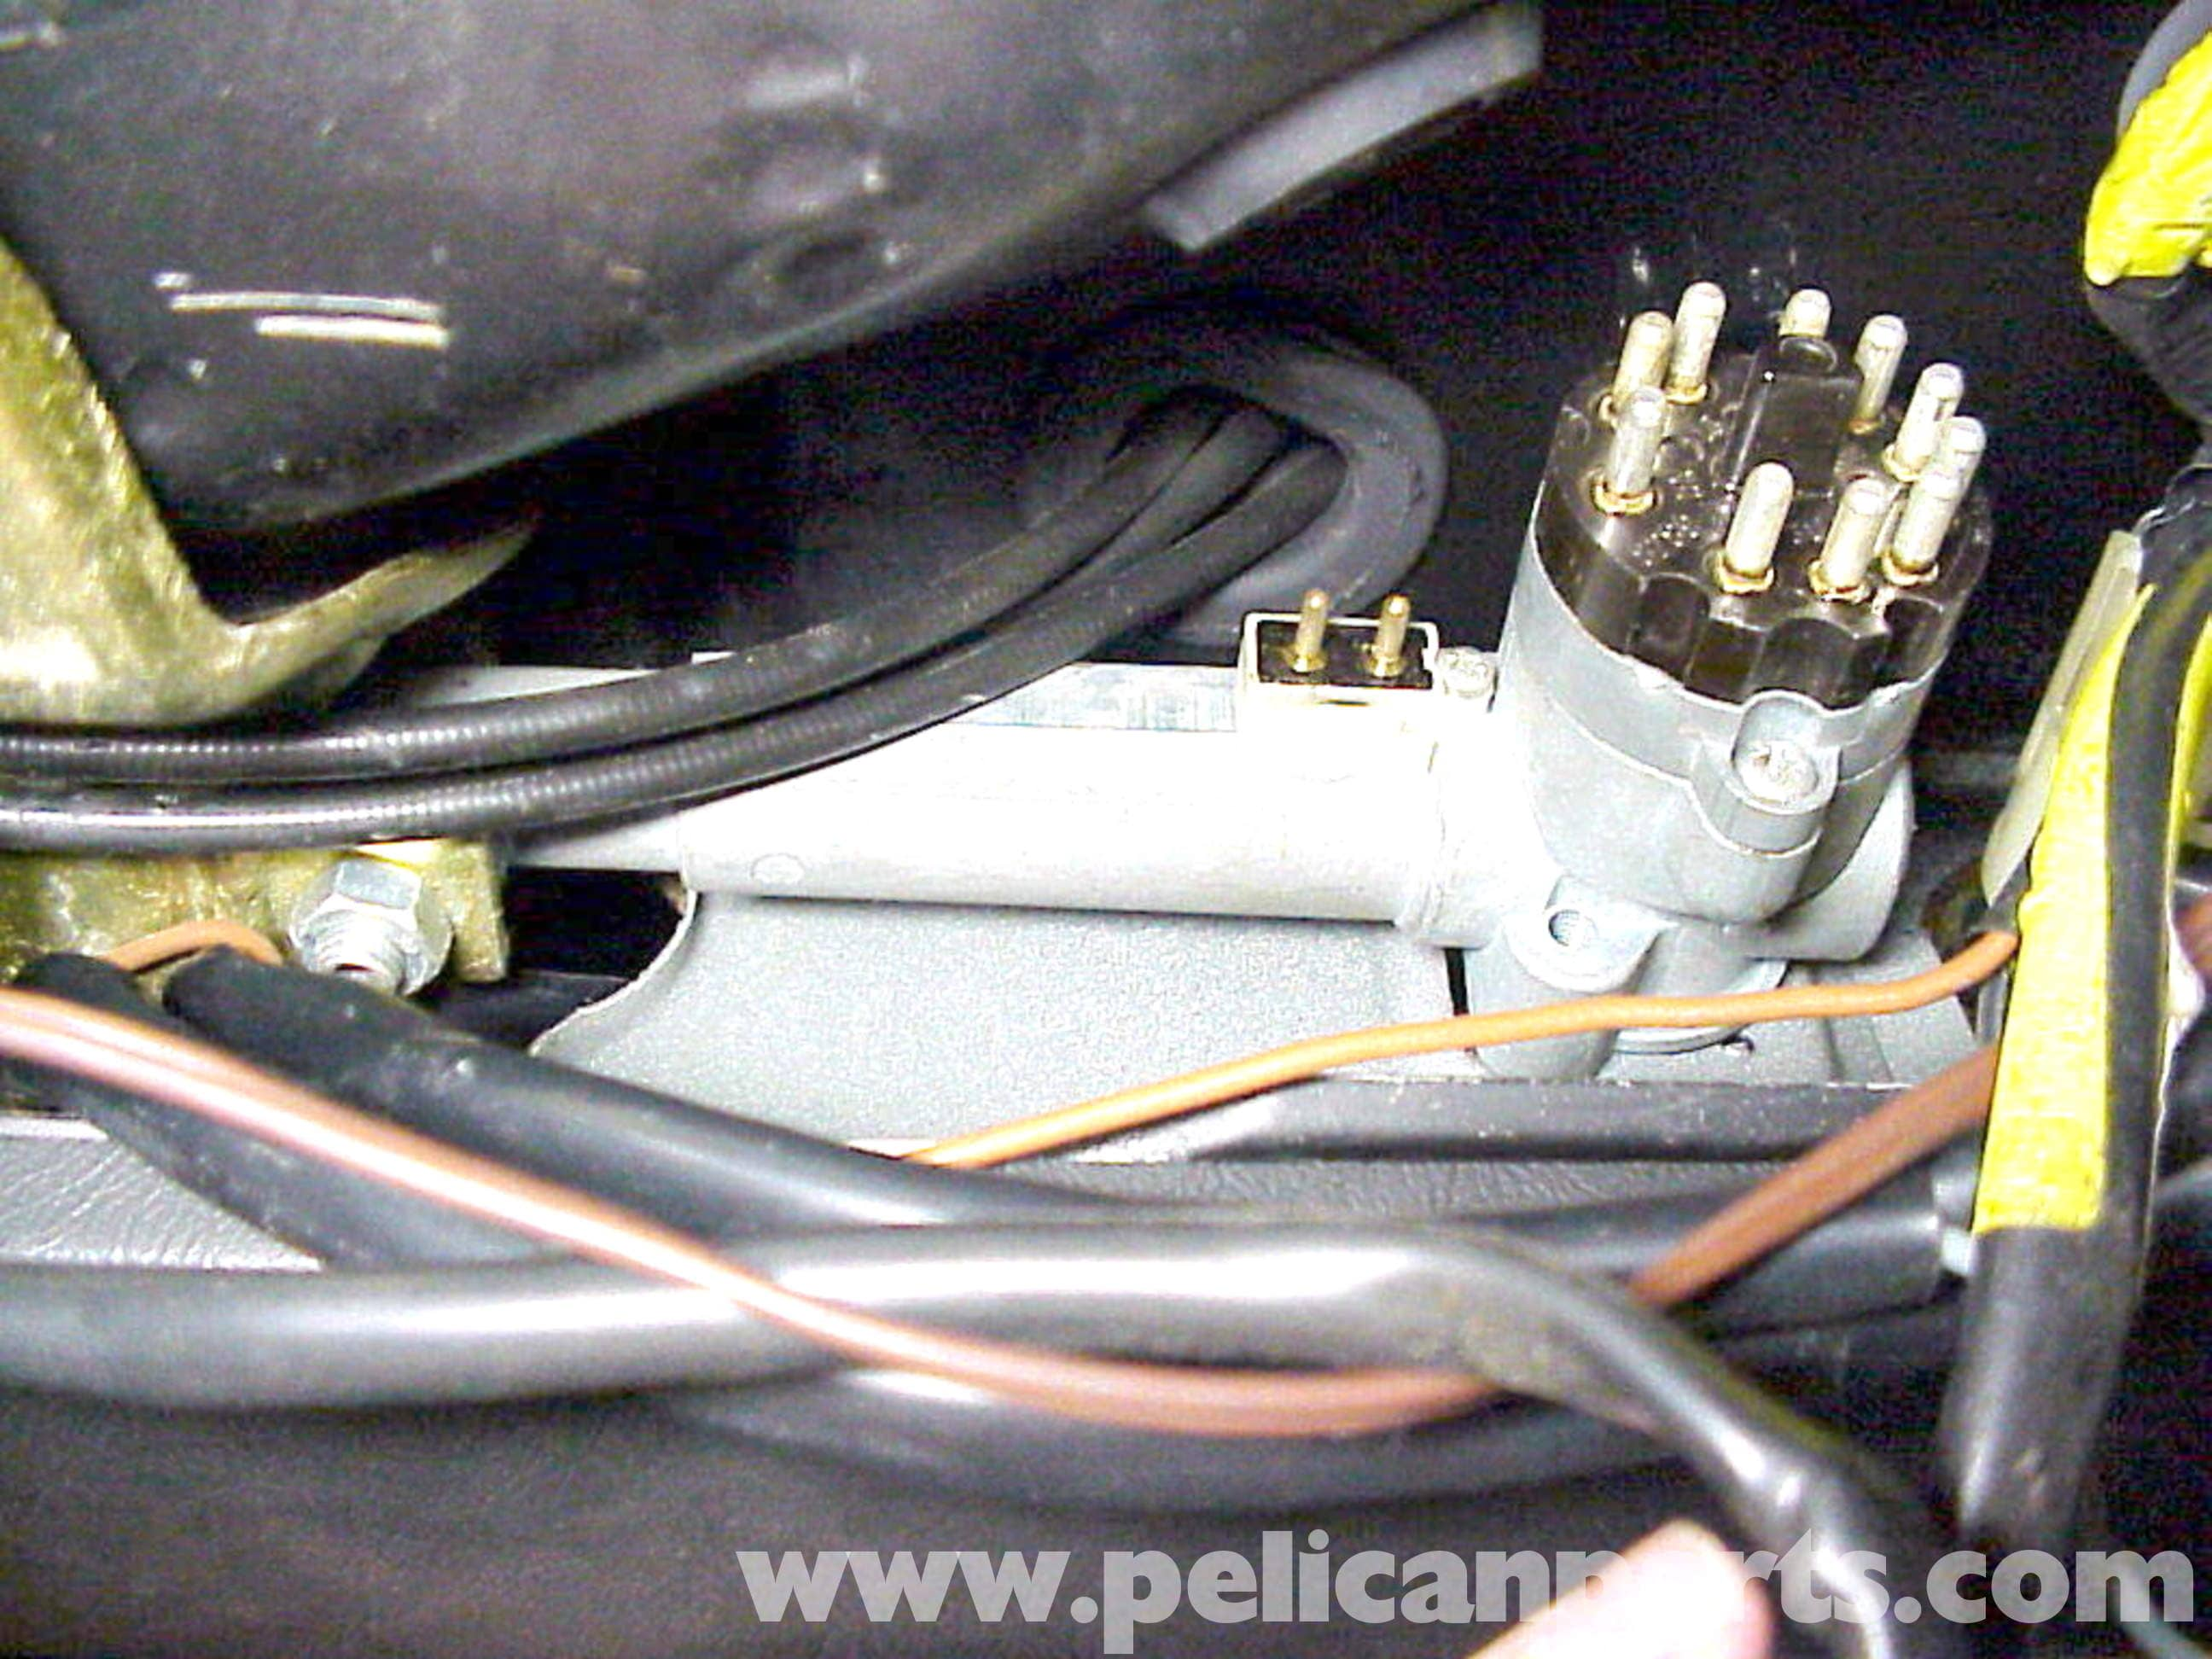 1984 Porsche 944 Fuse Diagram 1972 911 Wiring Harness Library Large Image Extra